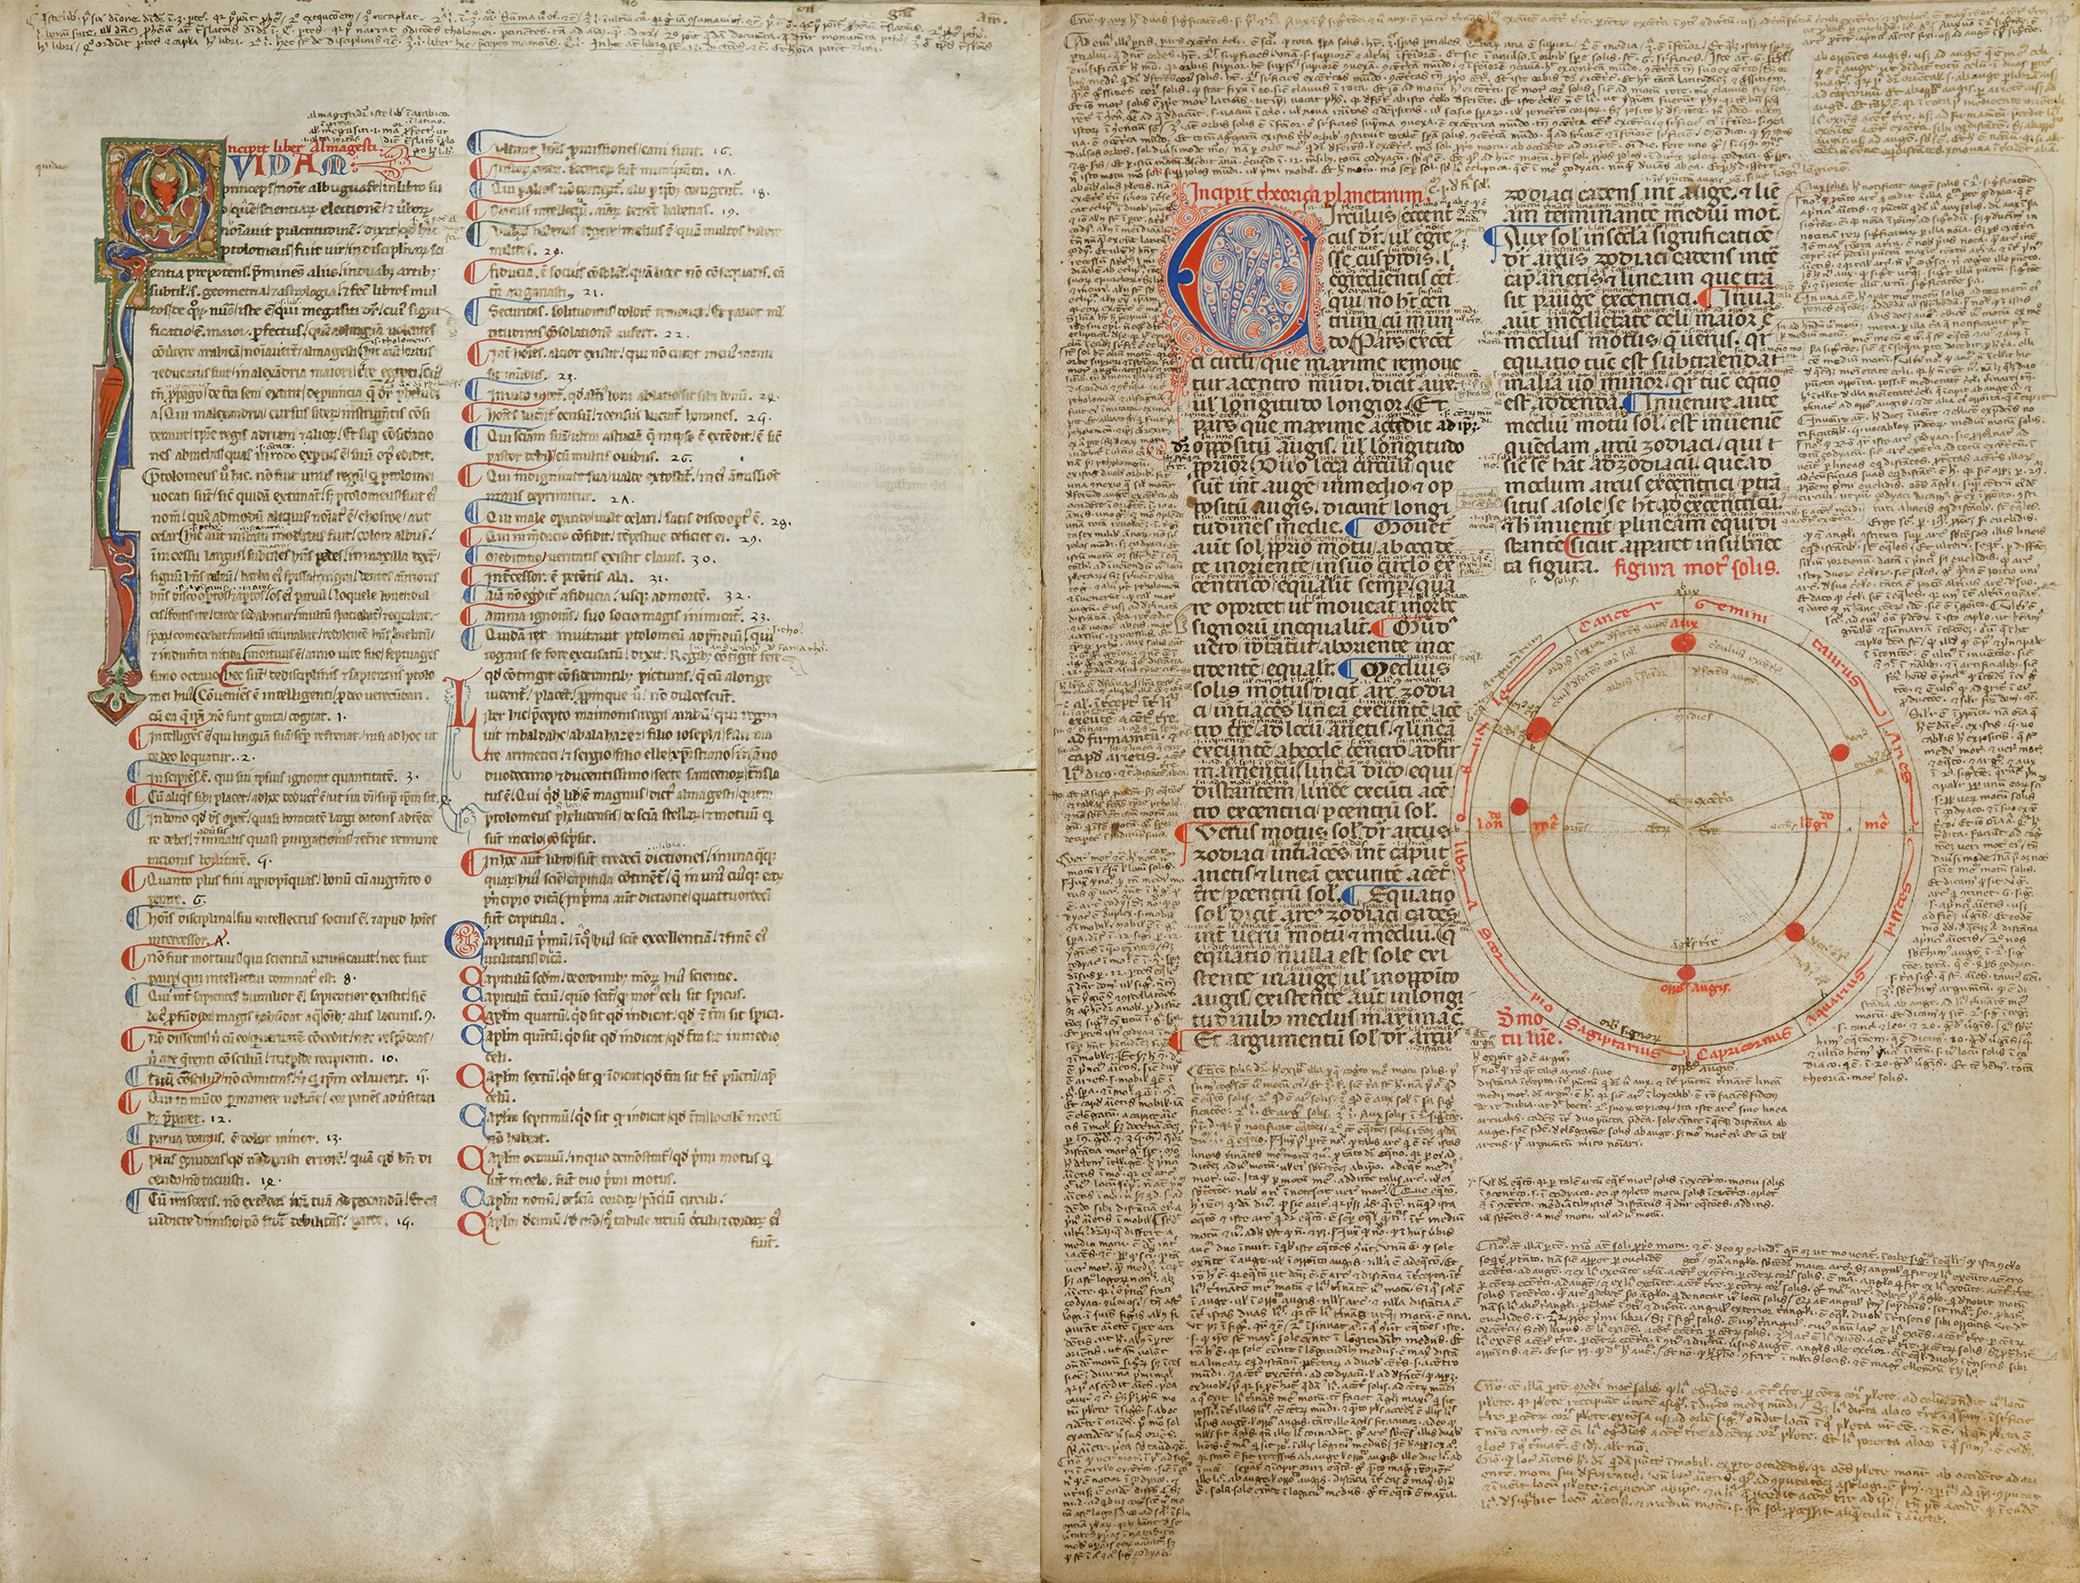 From Ptolemy's The Almagest, translated from the Arabic by Gerard of Cremona, 1200. State Library Victoria.